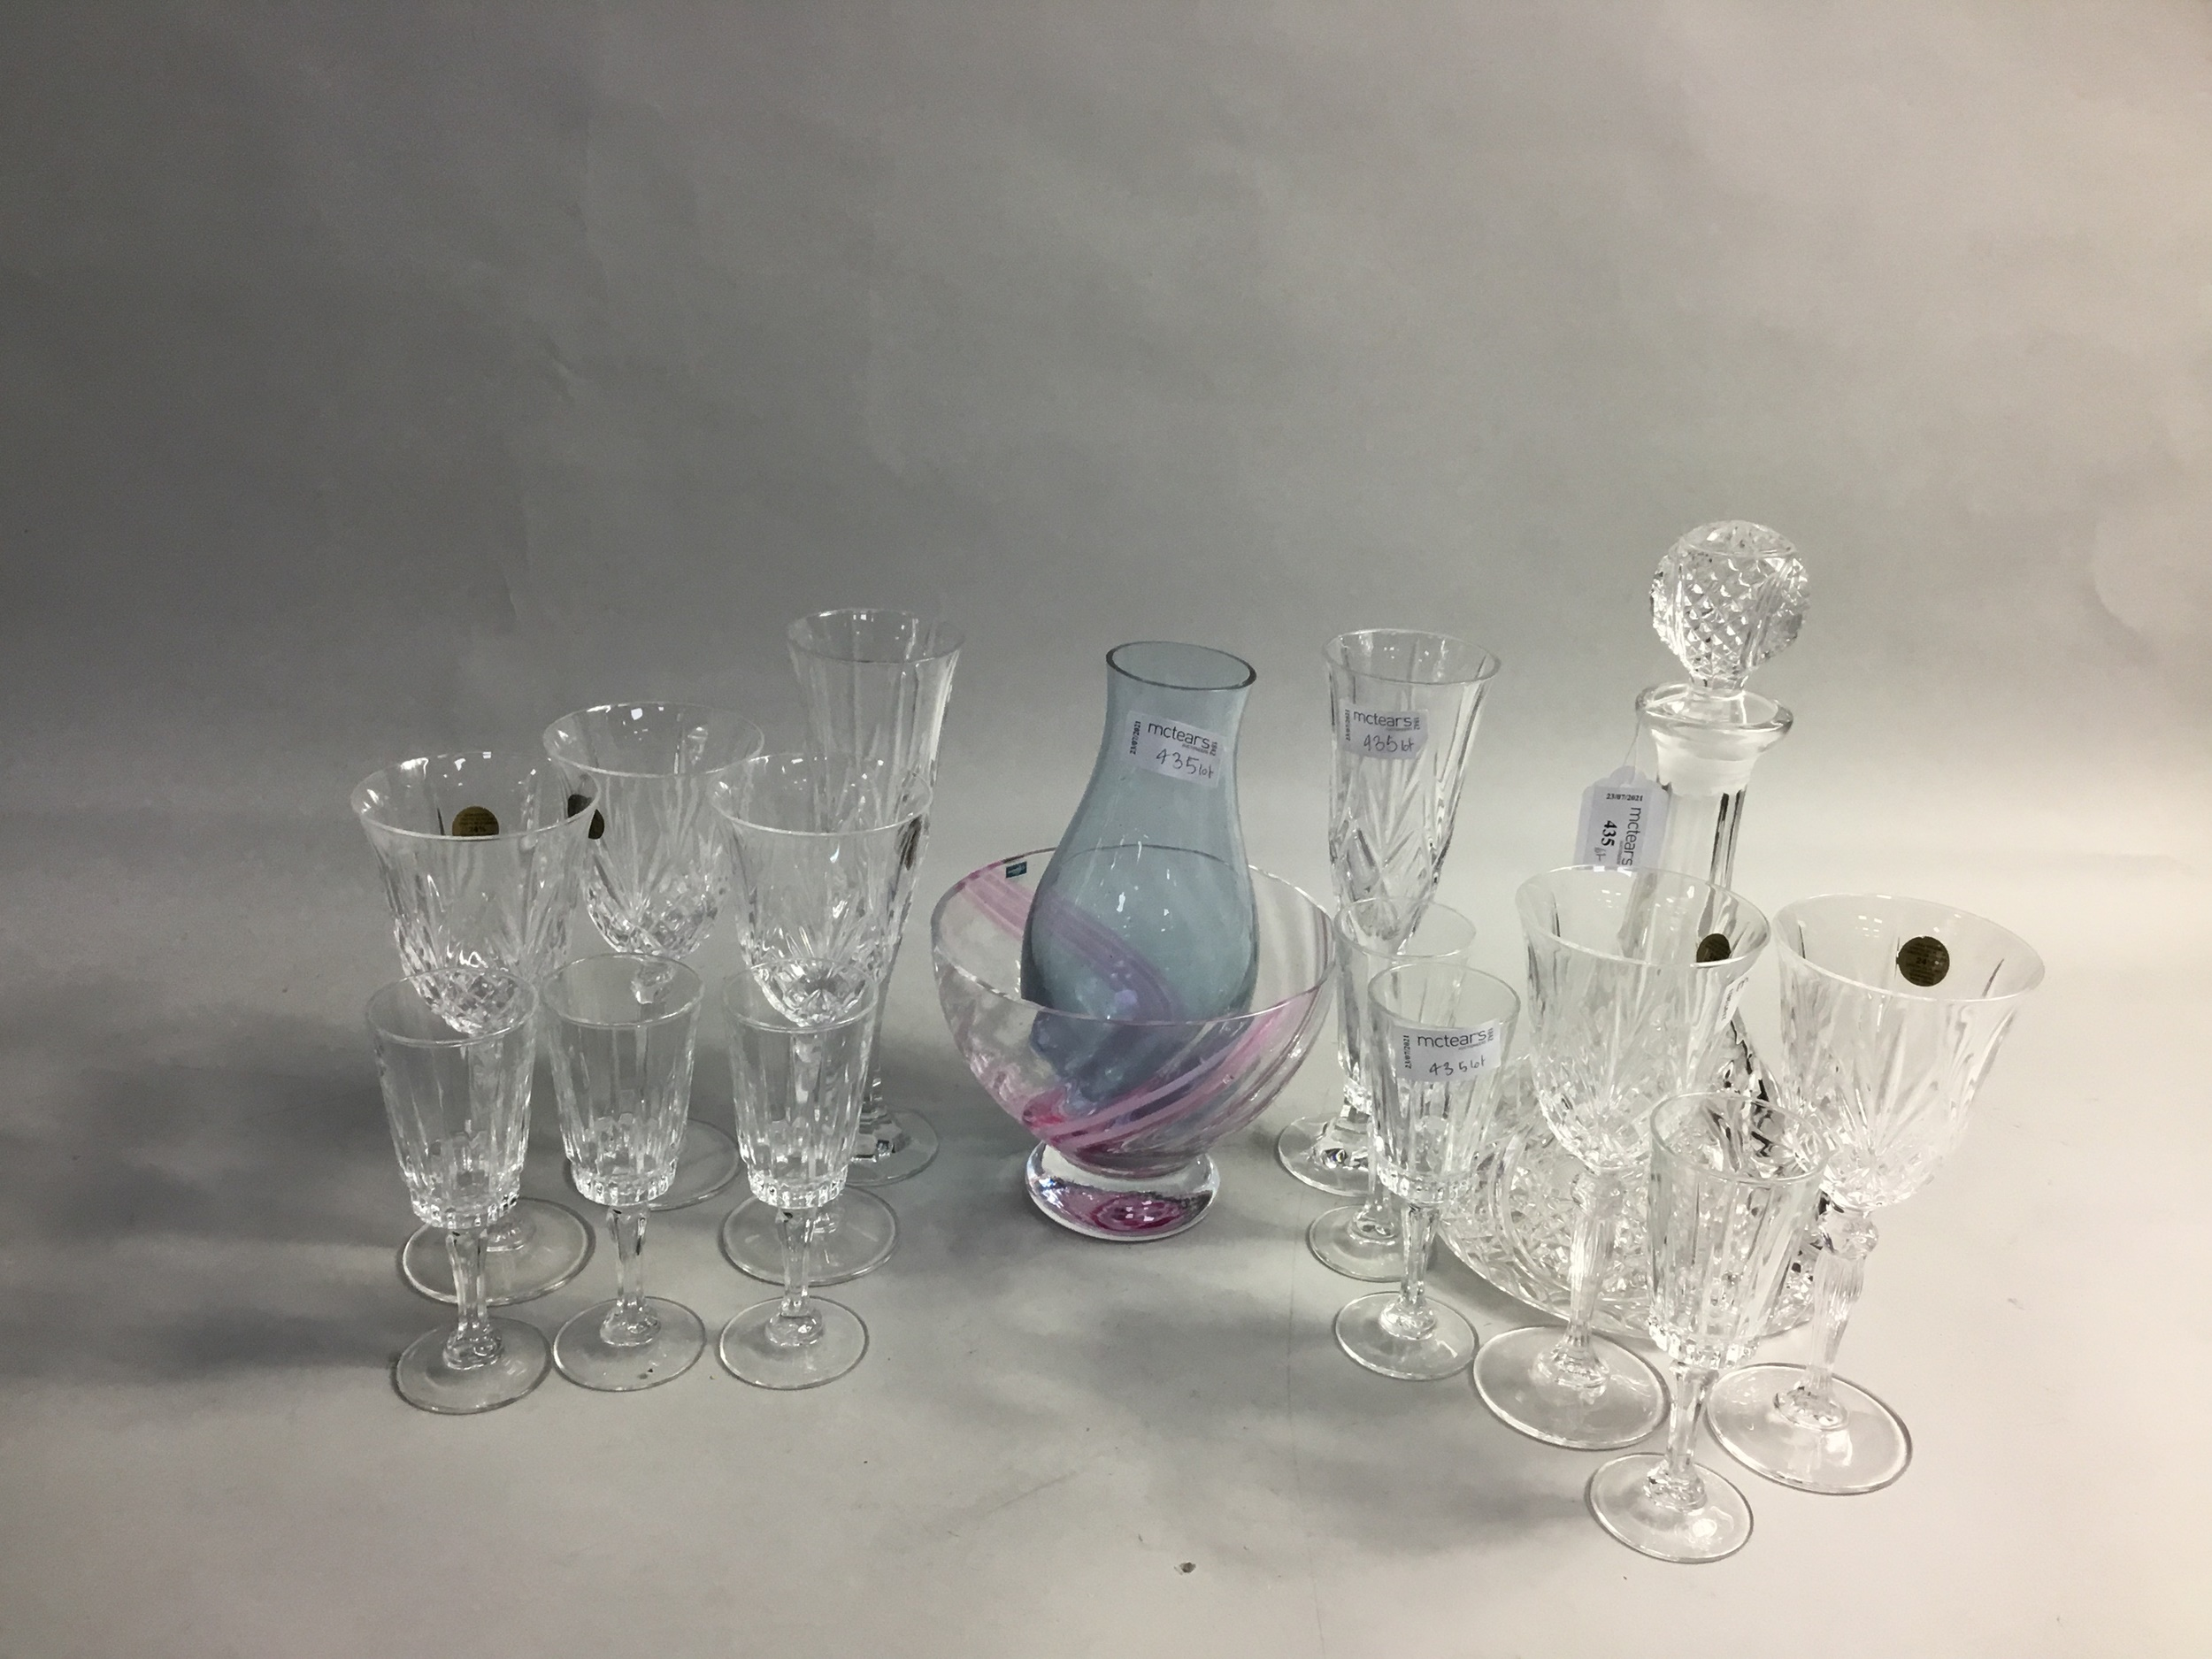 A MOULD BLOWN GLASS SHIP'S DECANTER AND OTHER GLASSWARE